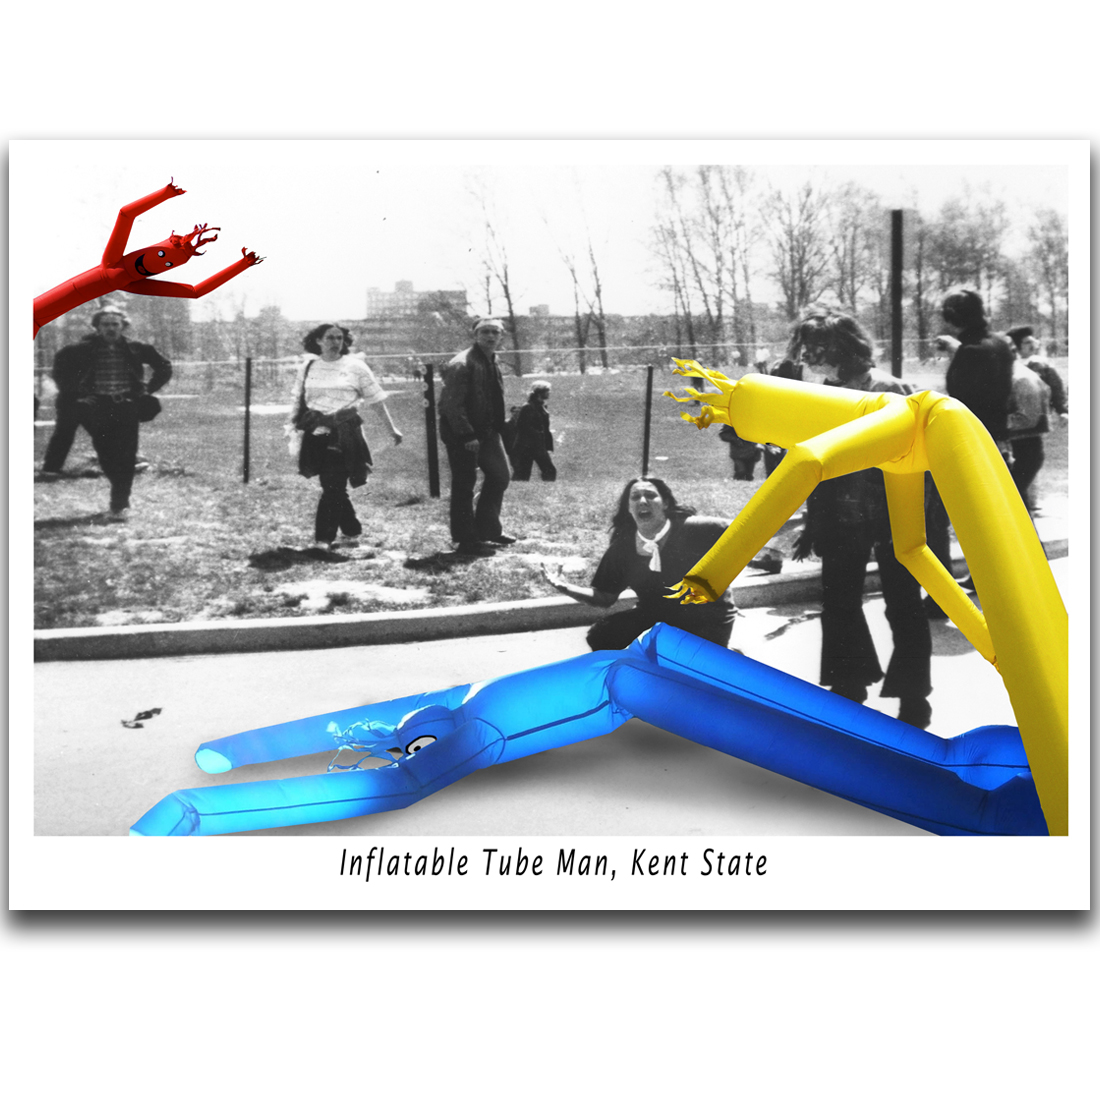 C007- Inflatable Tube Man, Kent State